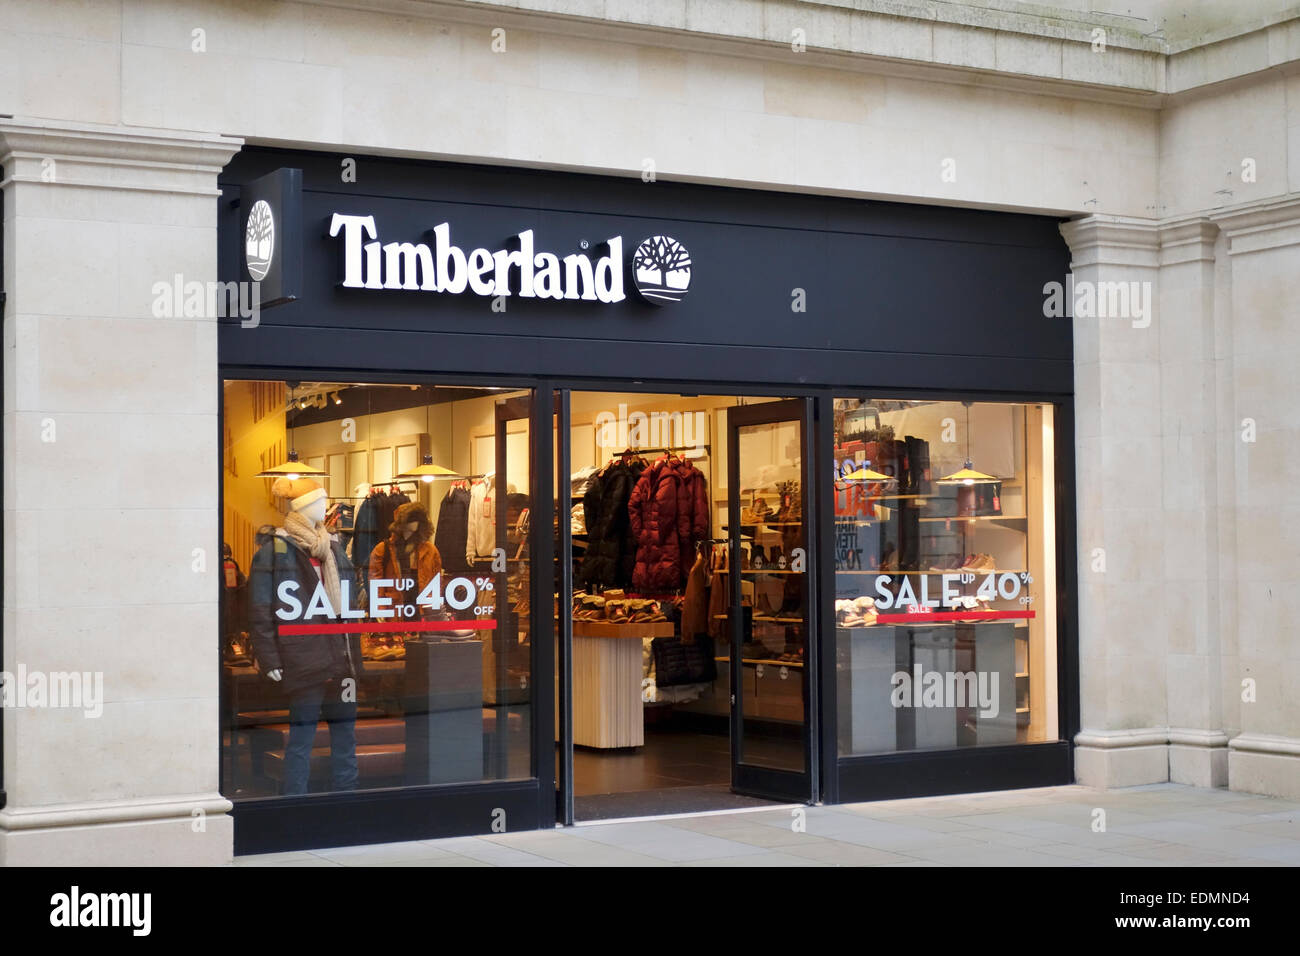 Timberland Shop Window Immagini e Fotos Stock Alamy